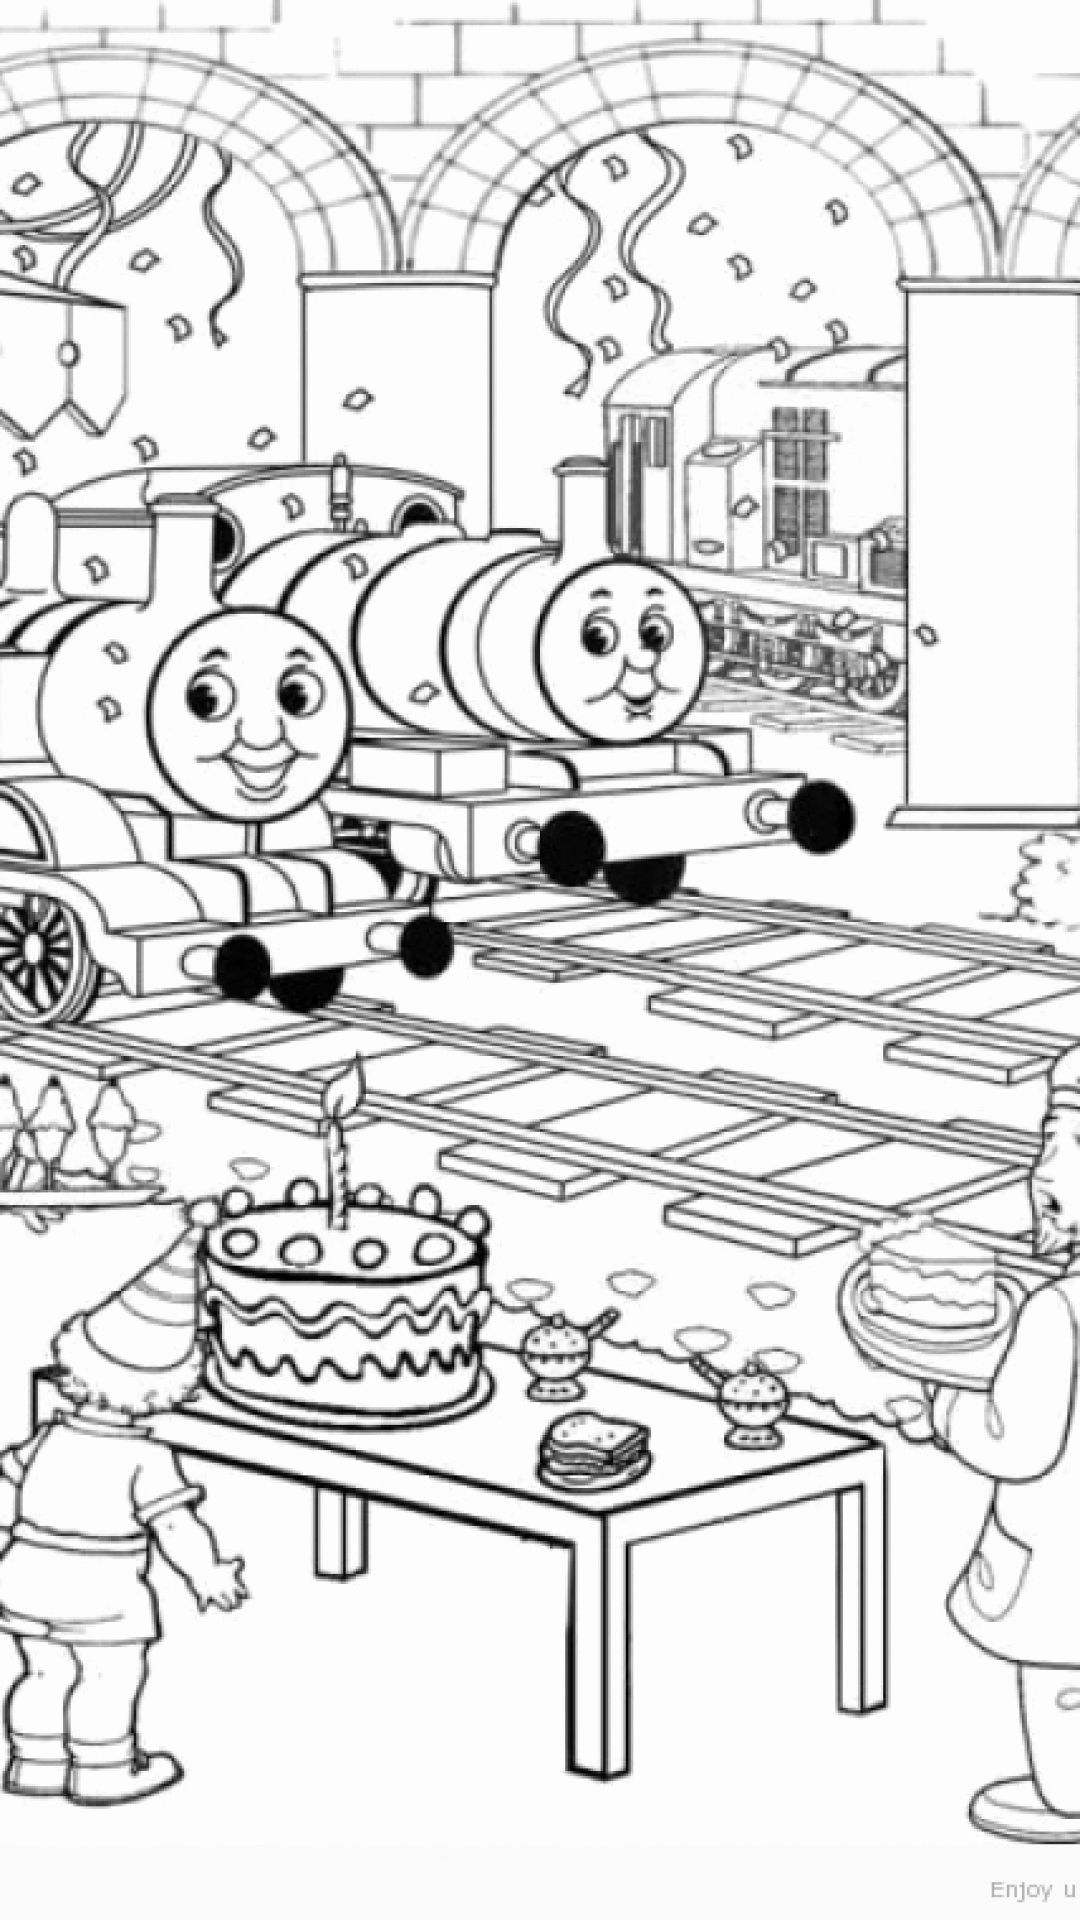 Percy Train Coloring Page Lovely Coloring Sheets Outstanding Train